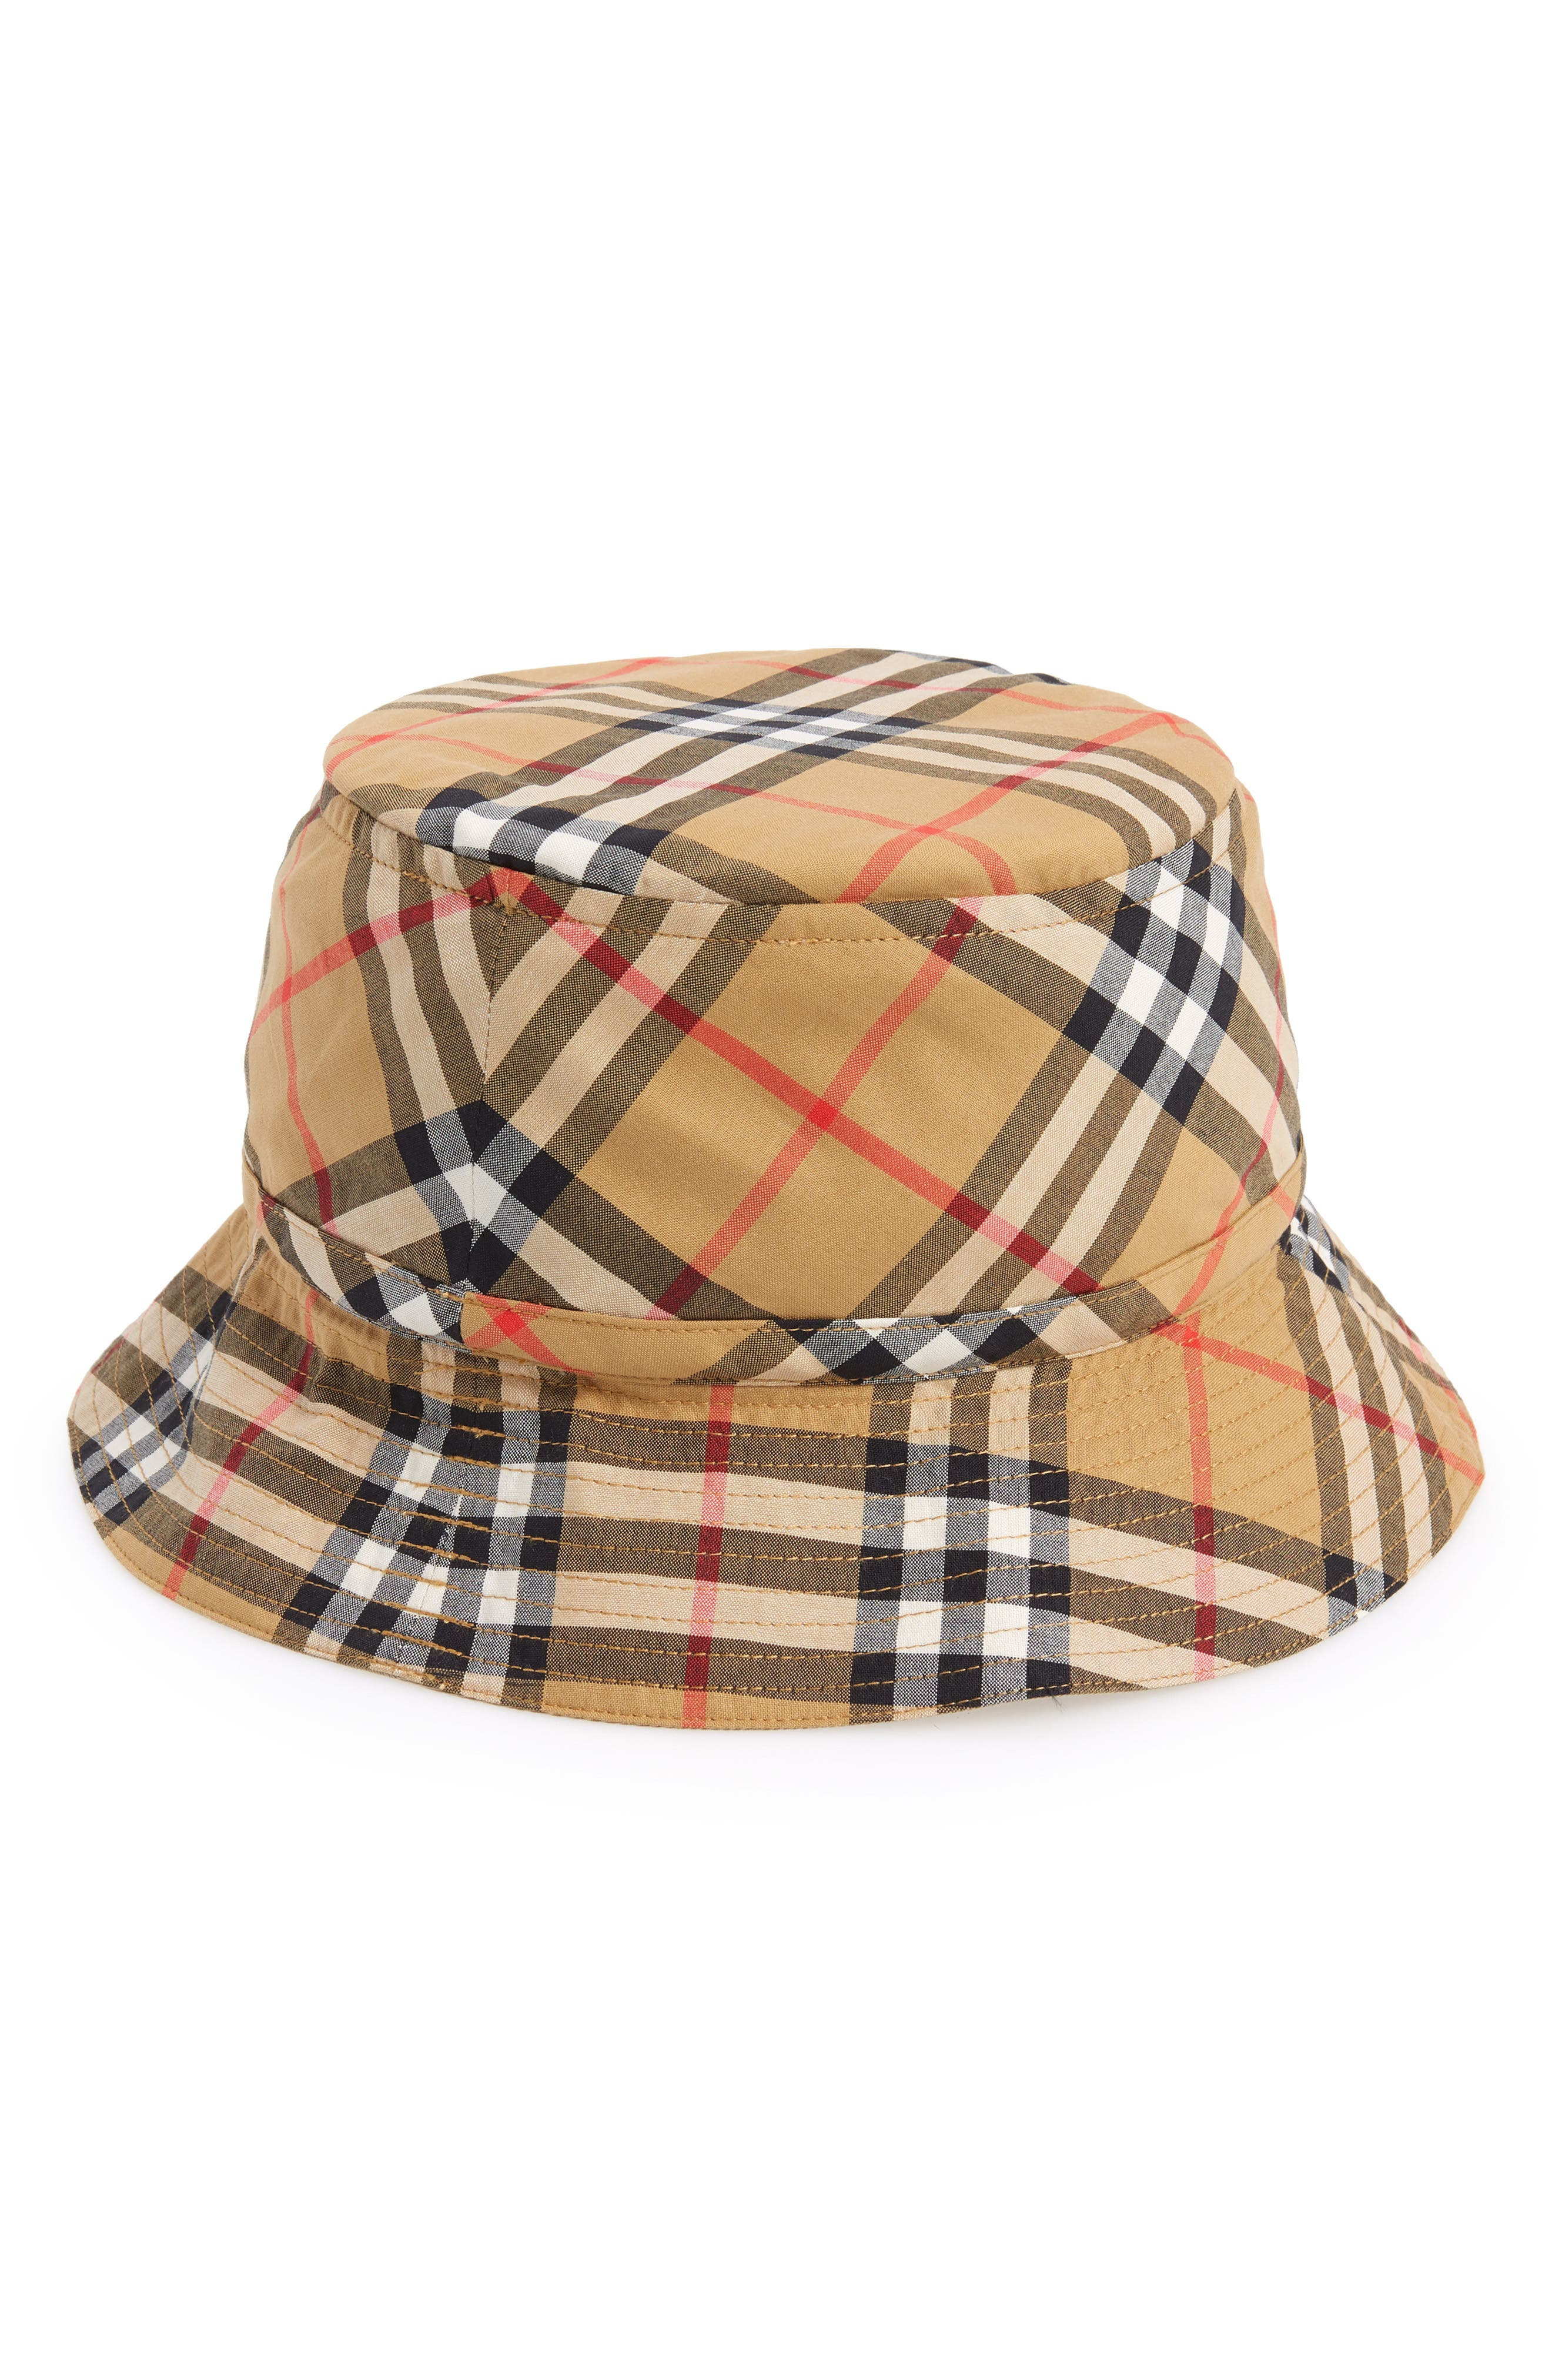 Chandy Check Hat,                         Main,                         color, 704